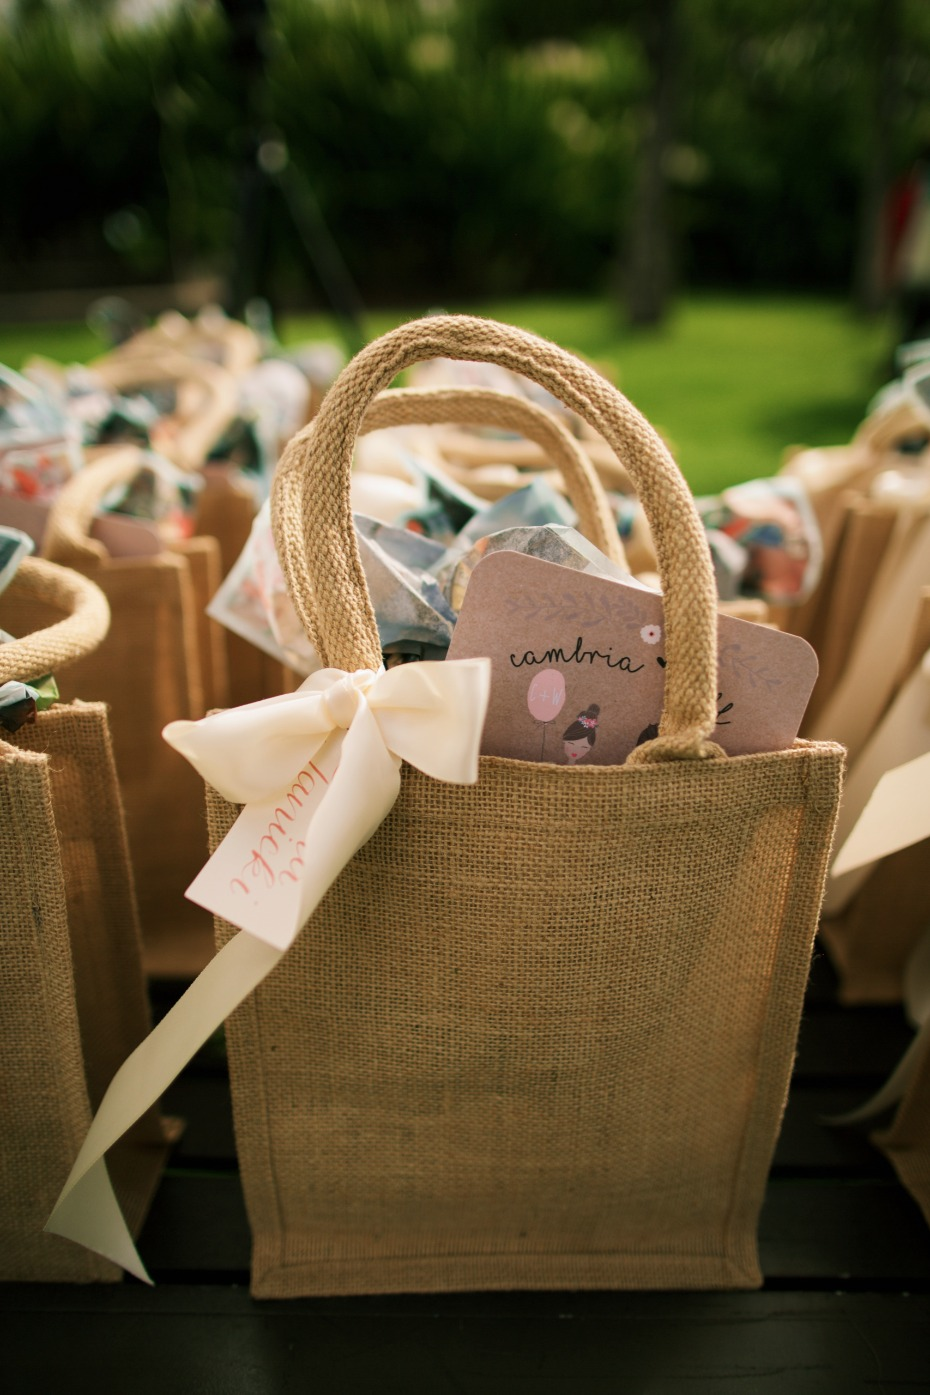 Favors bags for guests